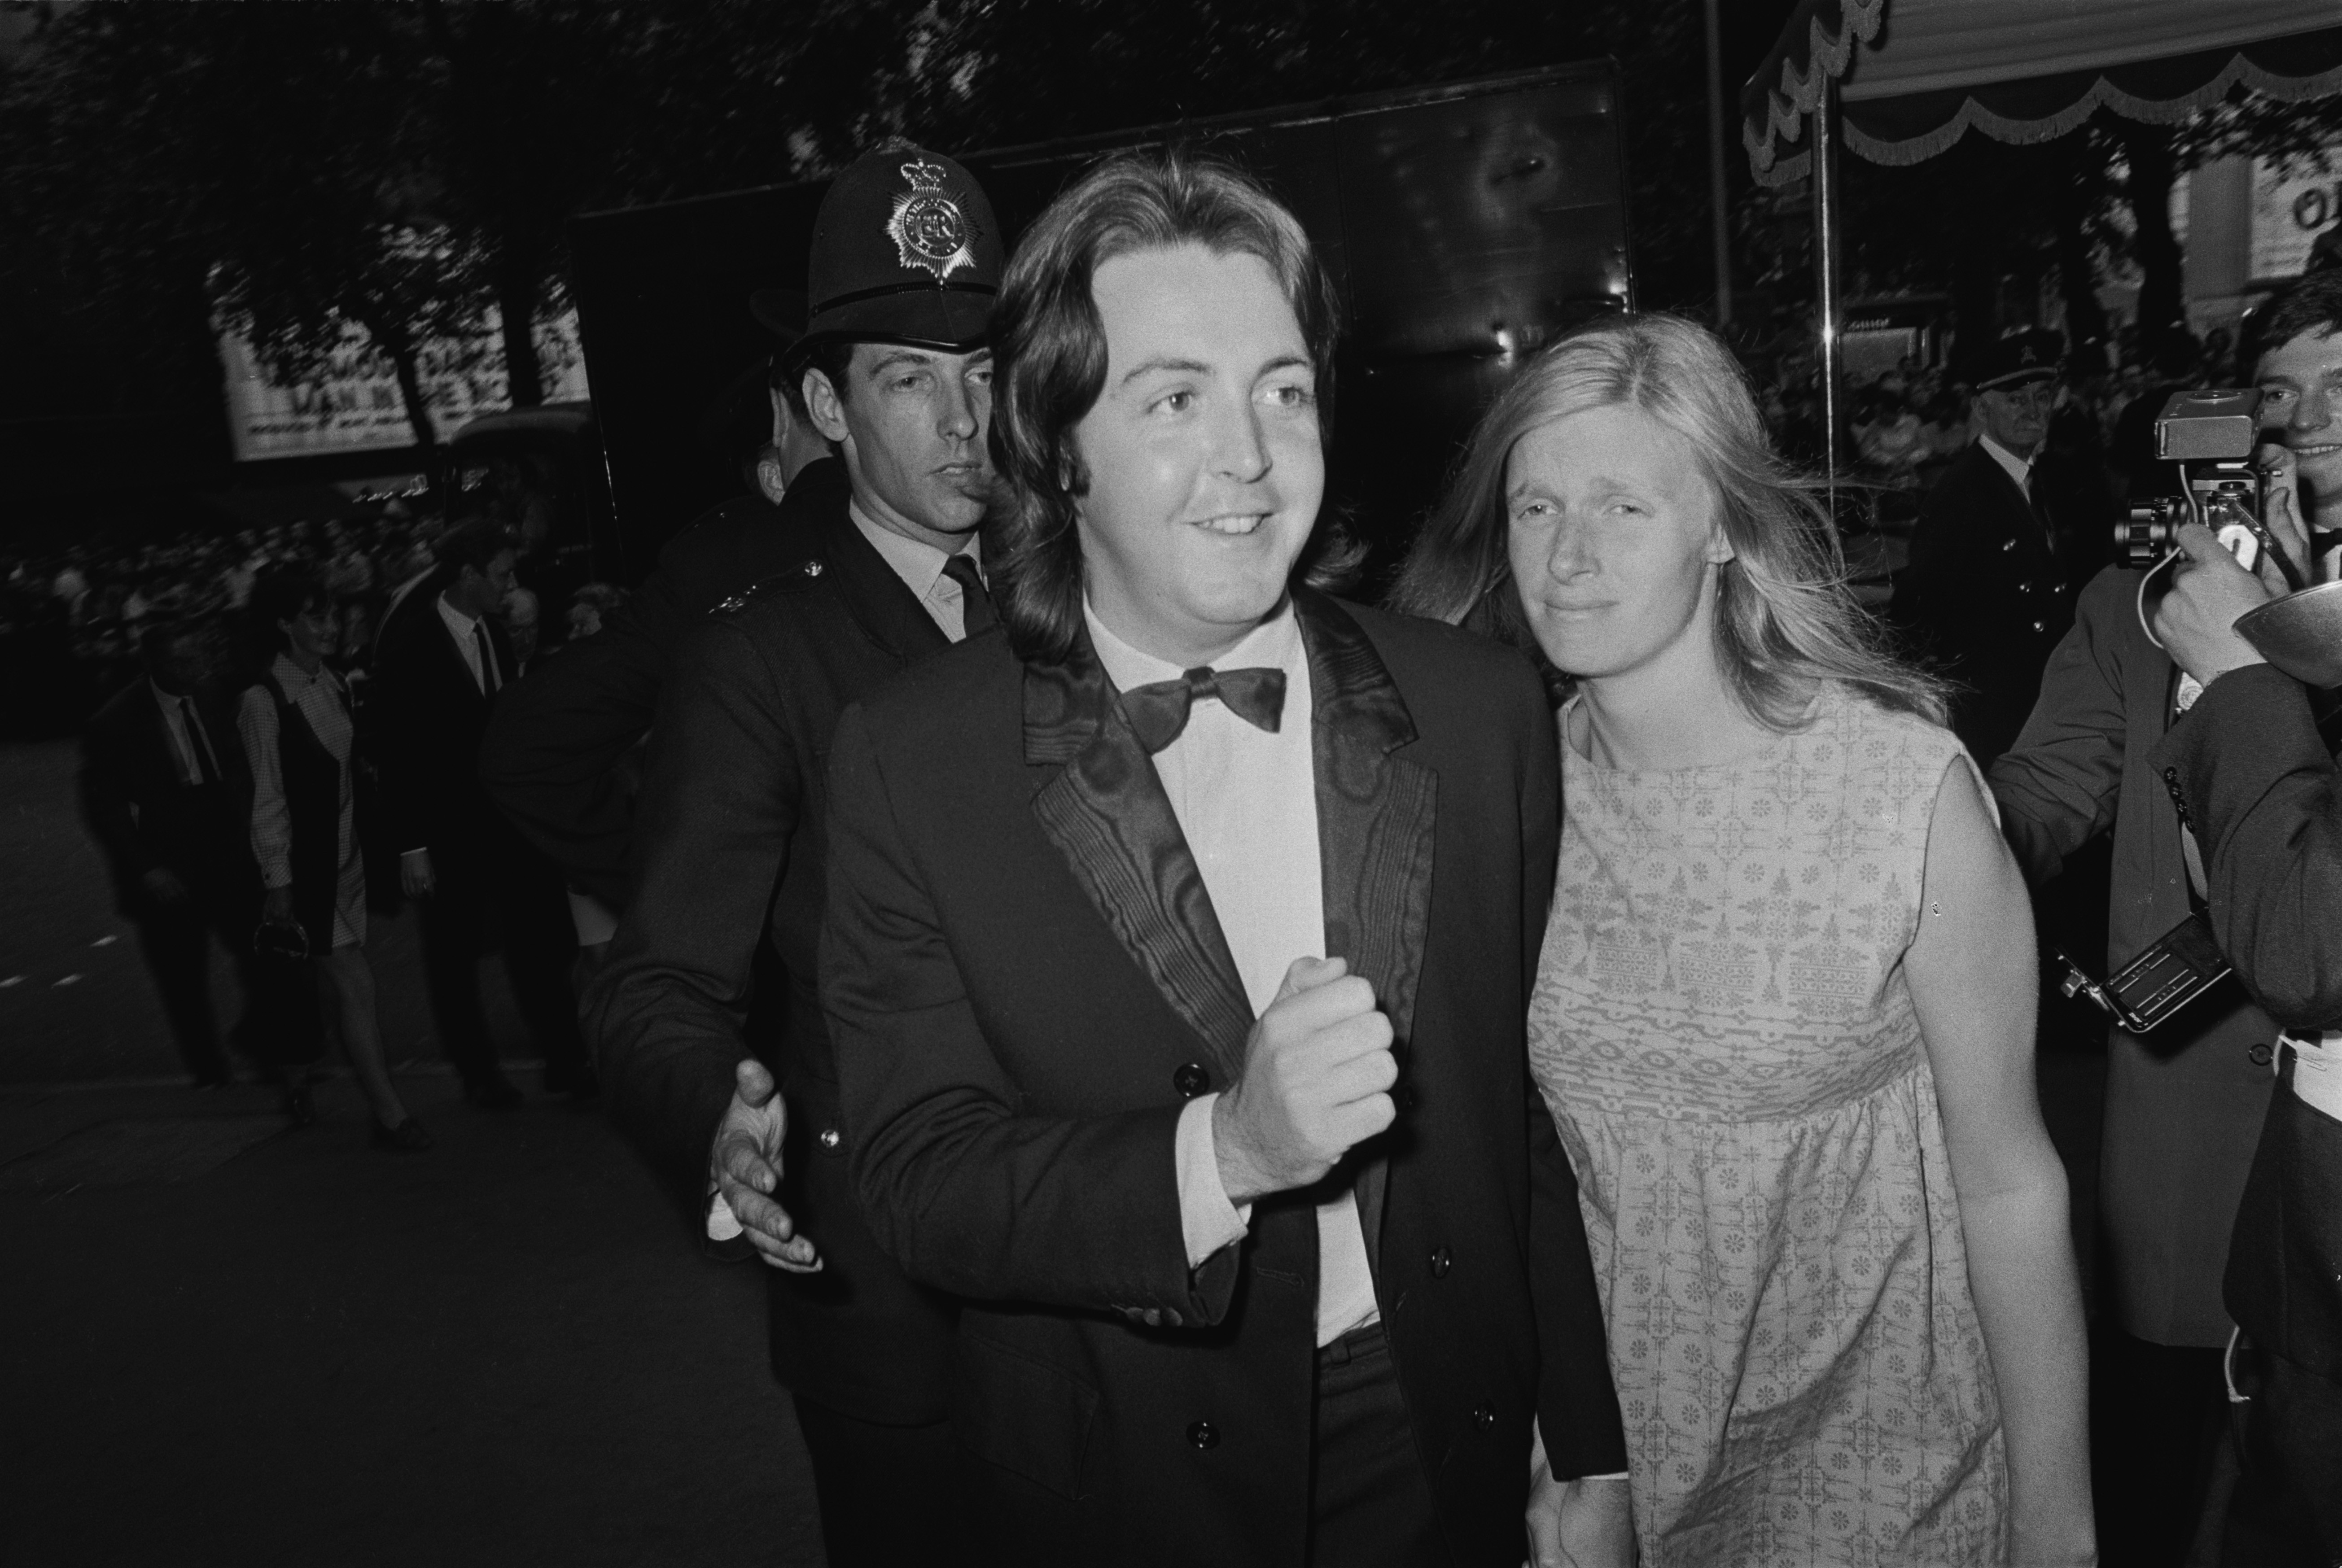 O músico Paul McCartney em foto com a esposa Linda (1941-1998) (Foto: Getty Images)